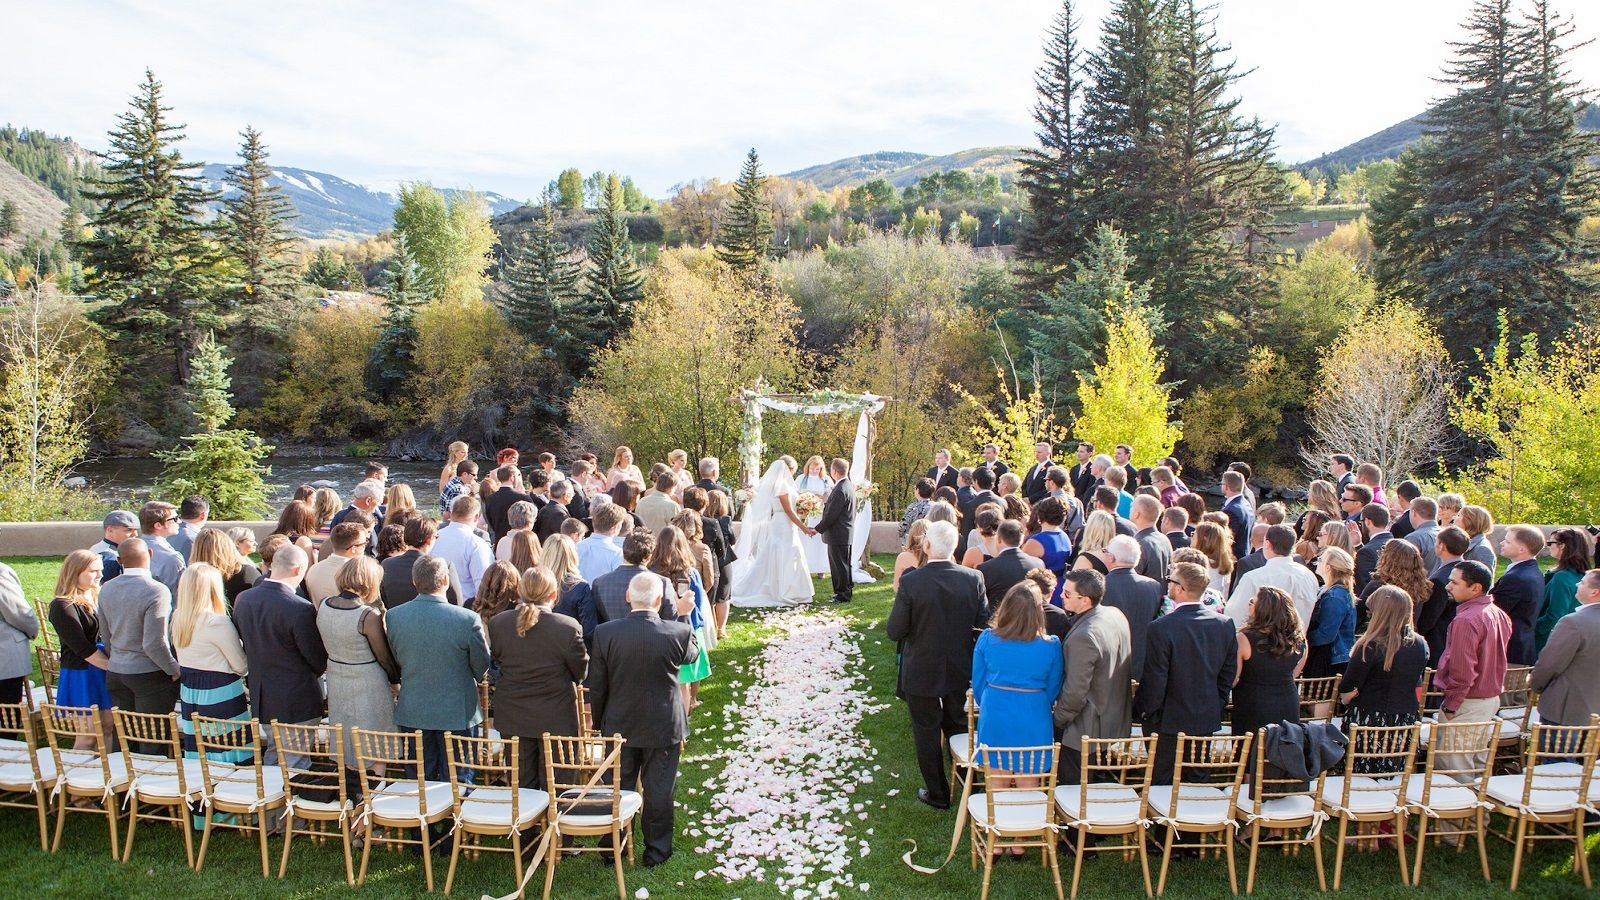 The Westin Riverfront Resort & Spa, Avon, Vail Valley - Weddings